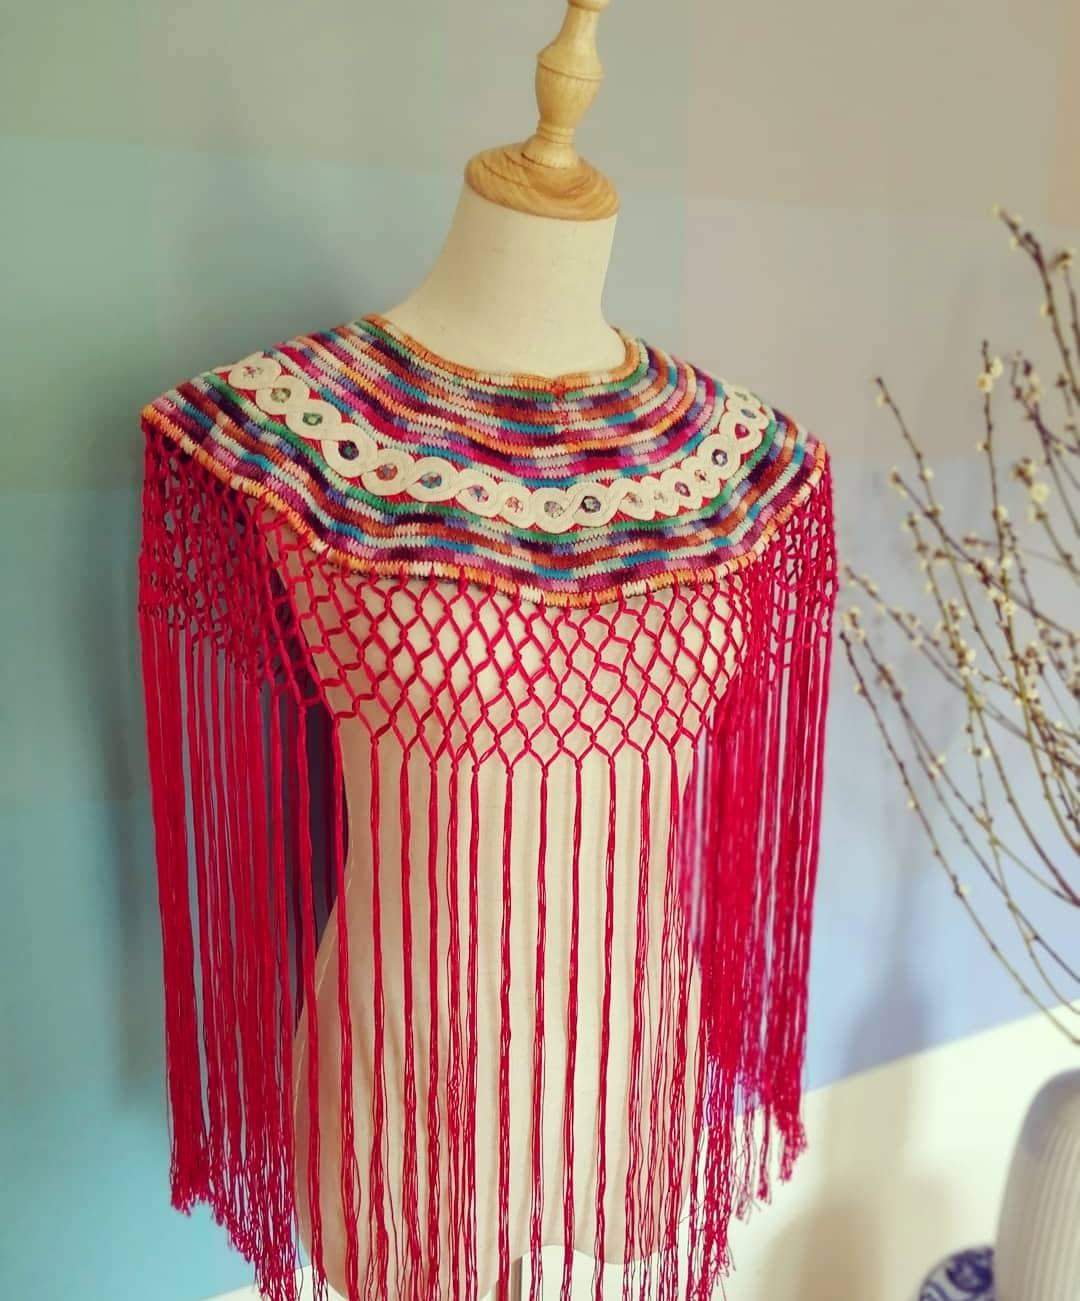 Down to Xjabelle - Pink Huipil Collar with Fringes